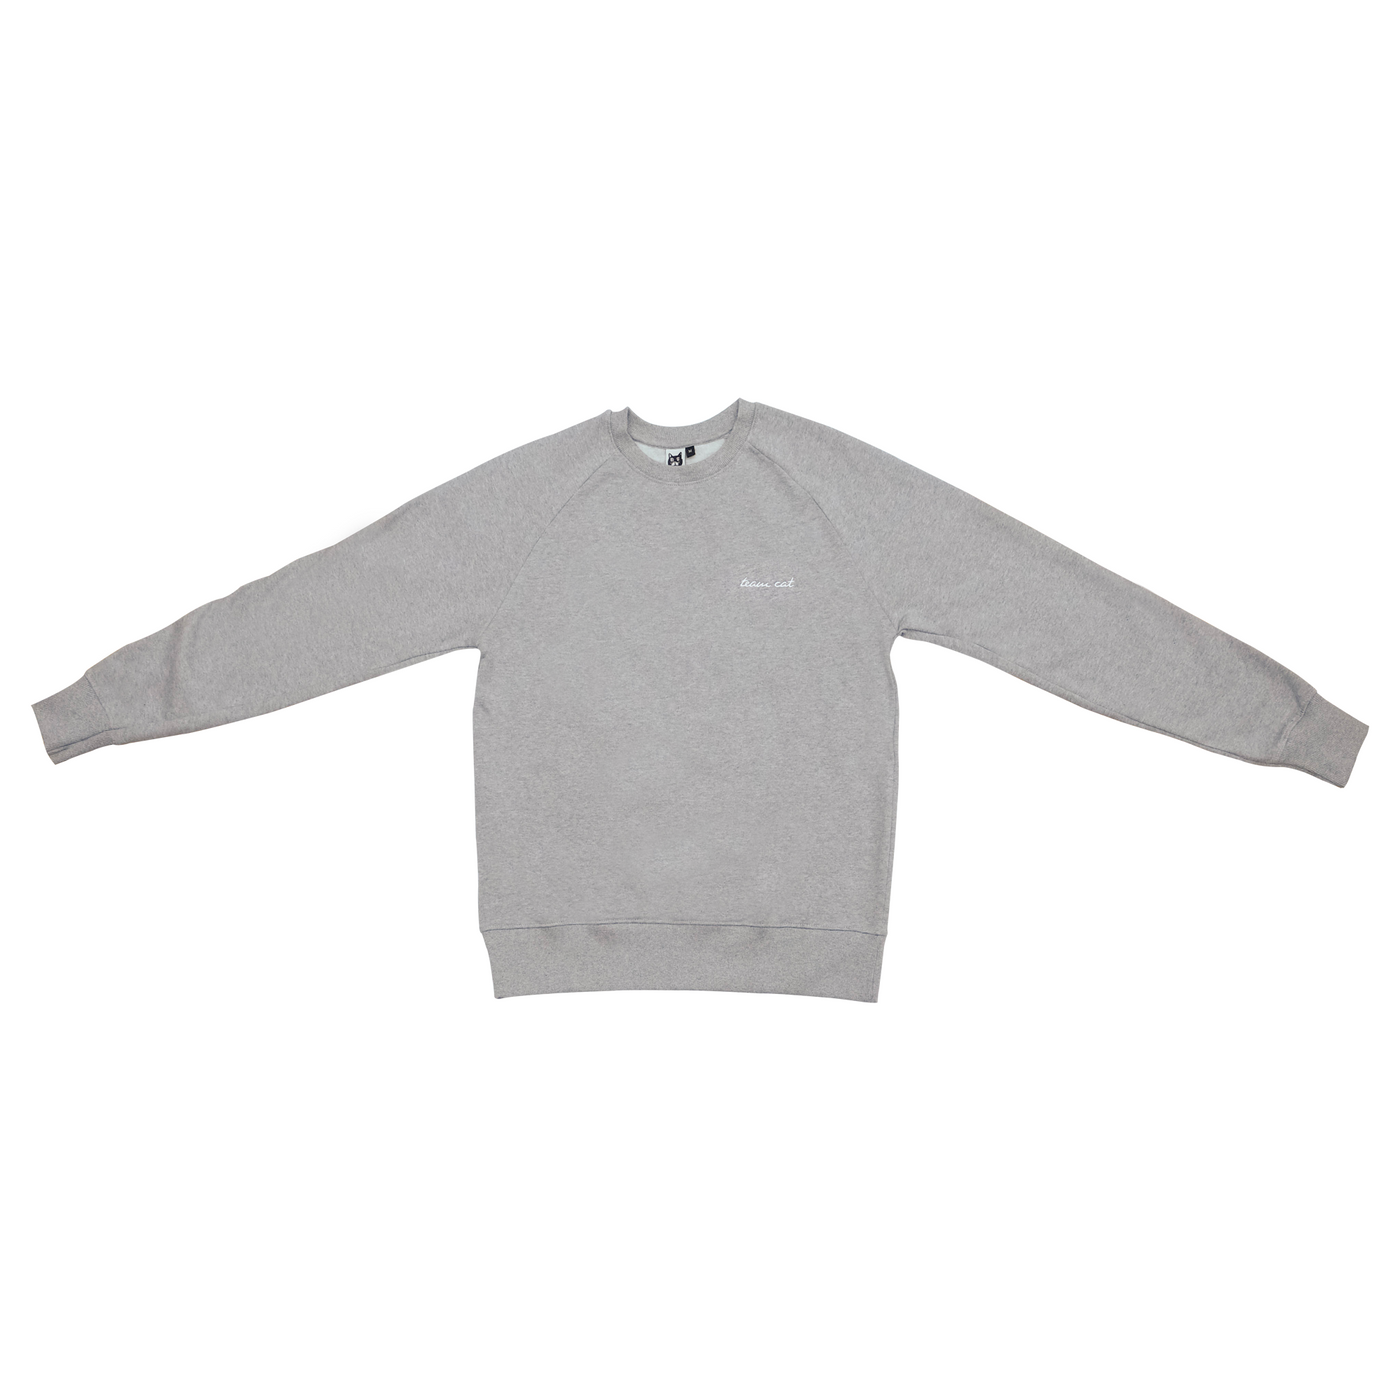 Team Cat Sweatshirt Grey/White Stitching